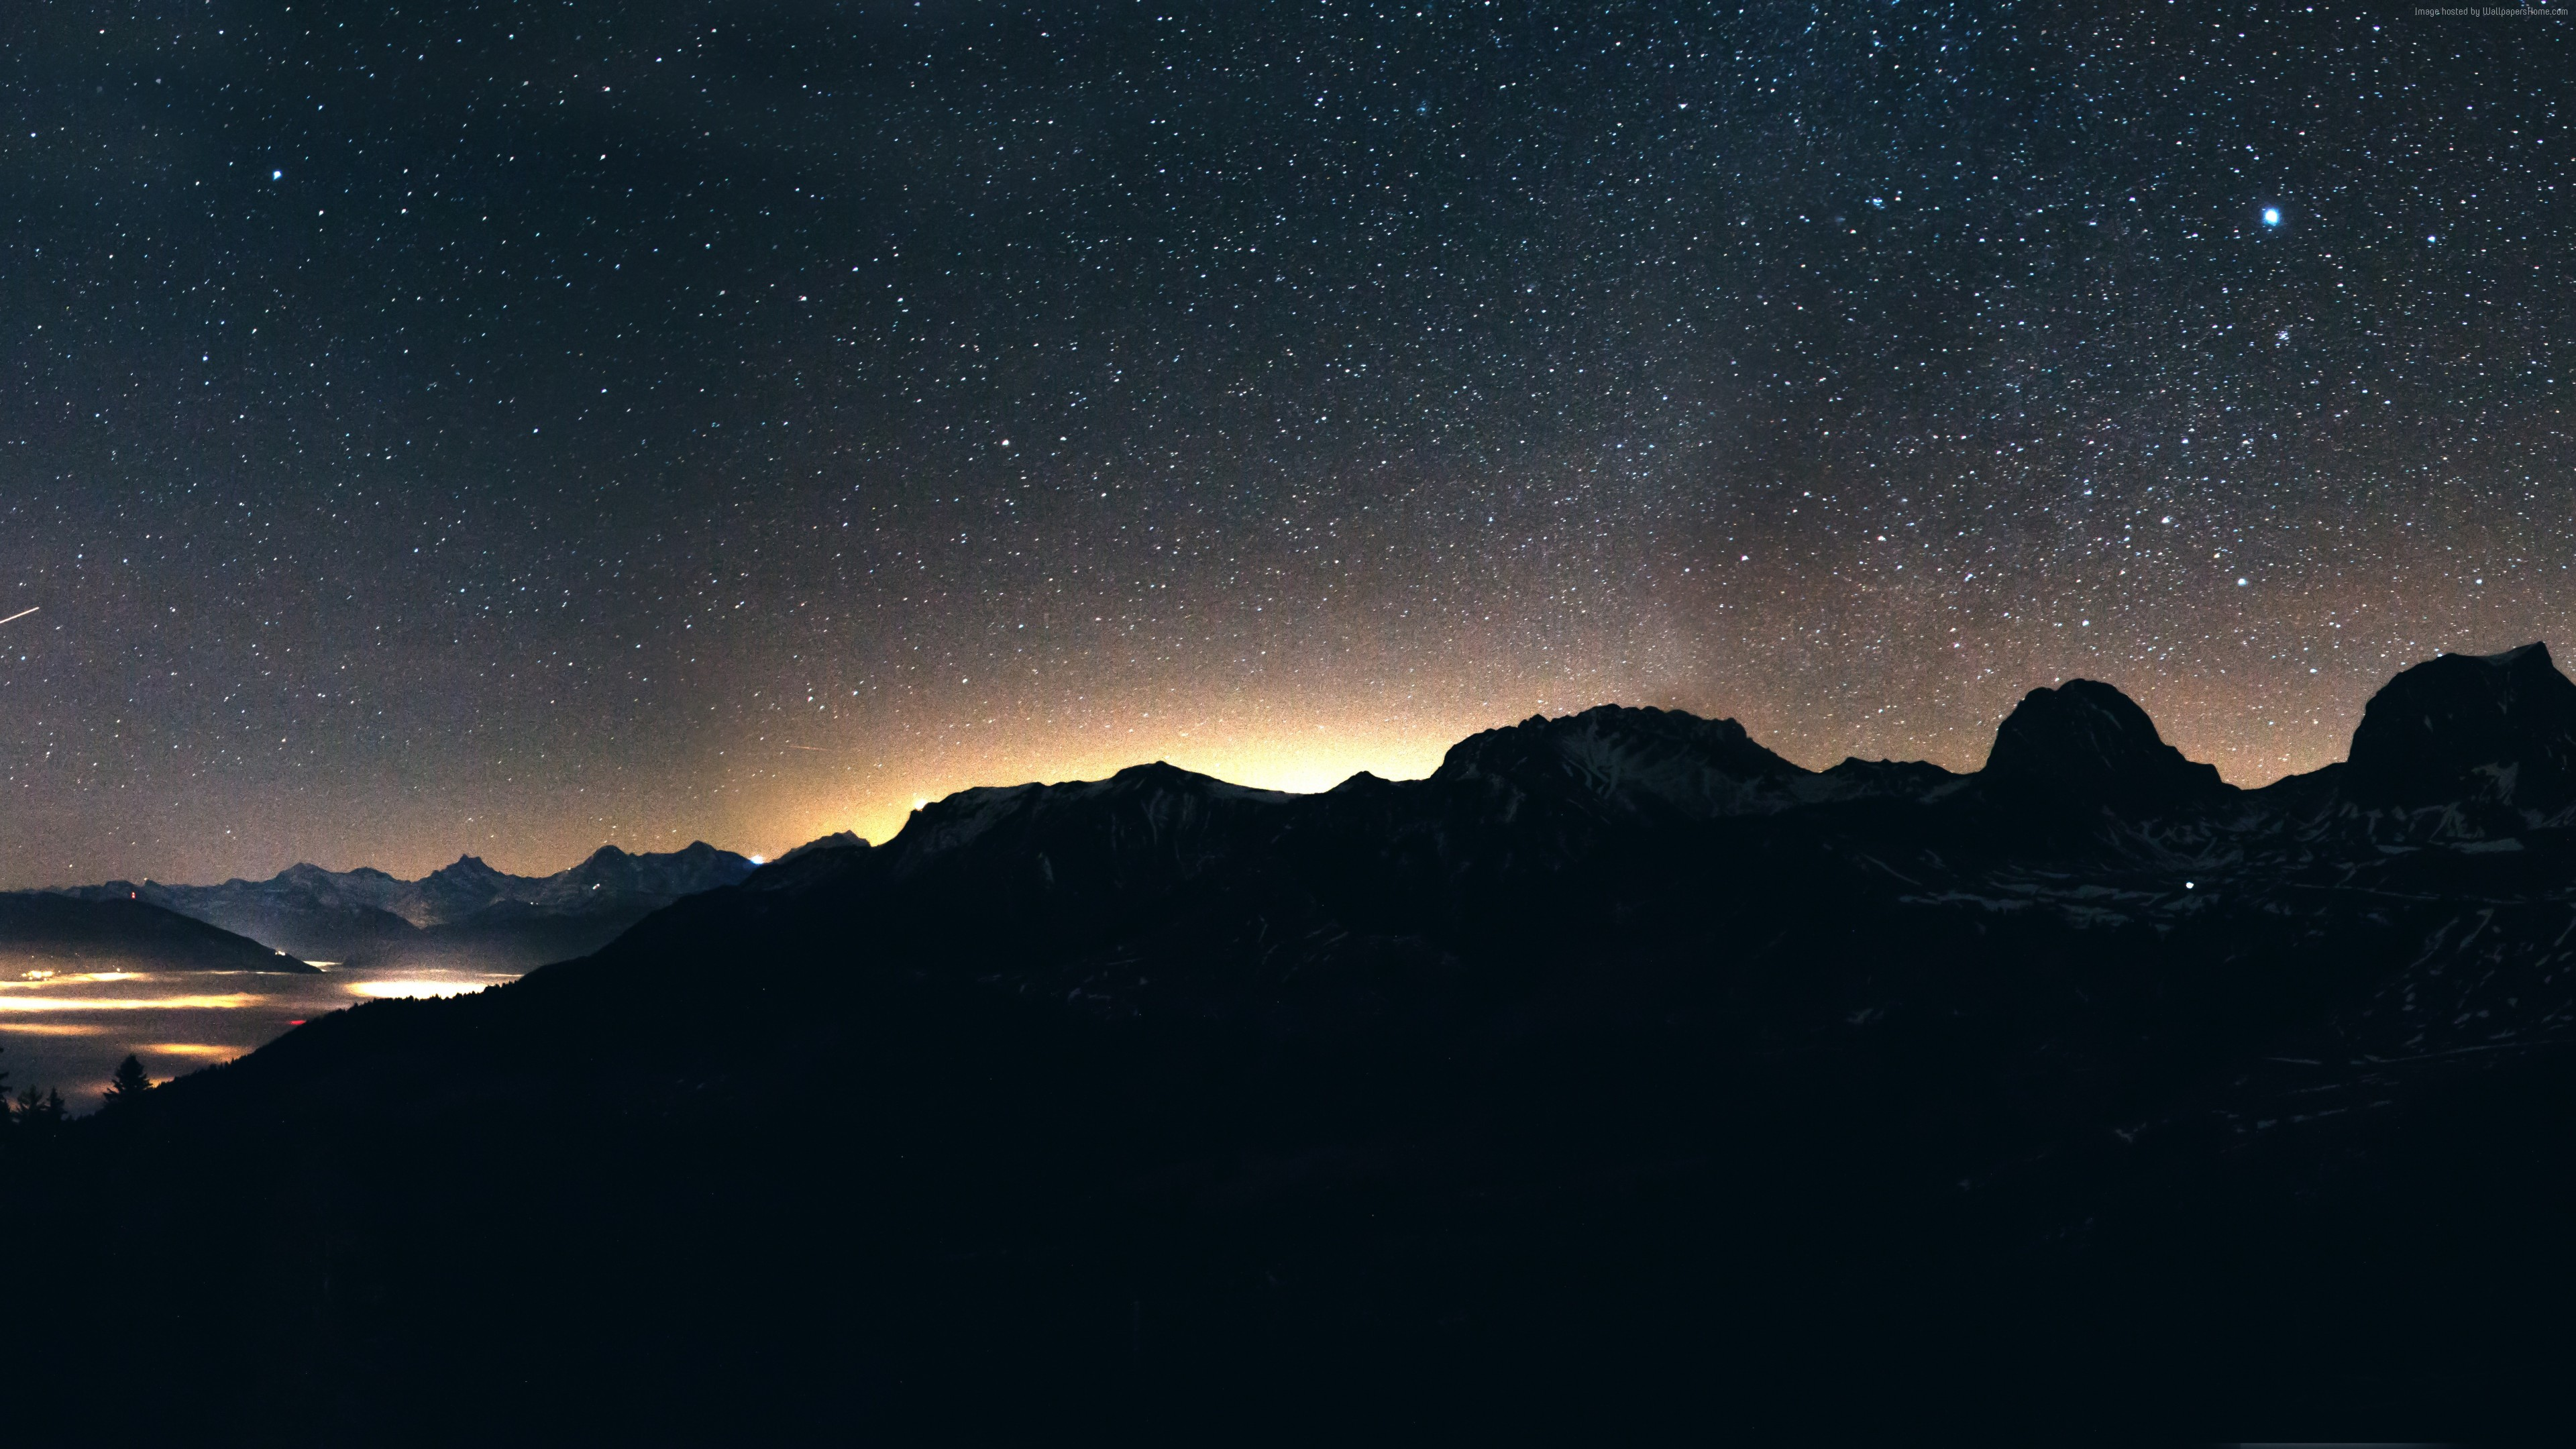 Stock Images night, sky, mountains, 8k, Stock Images